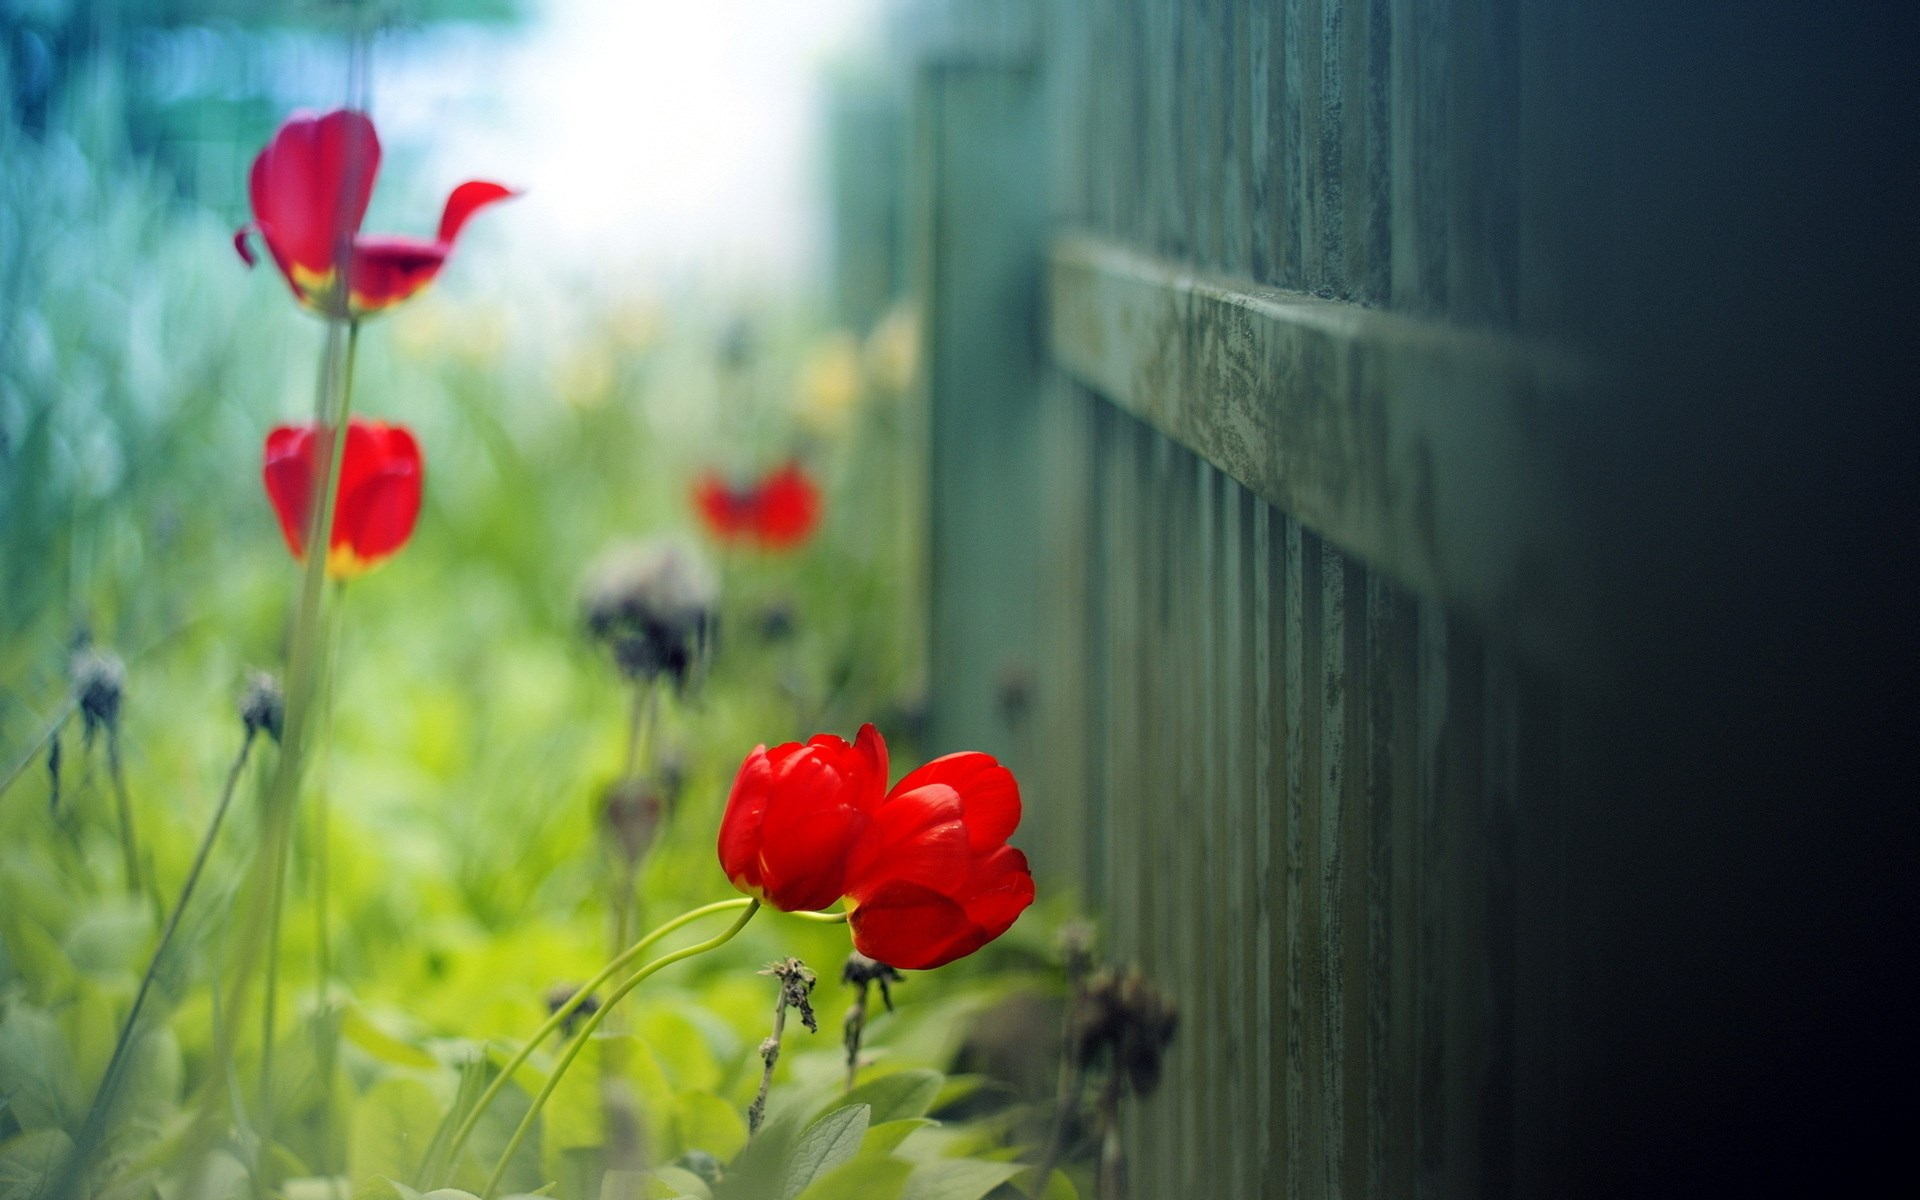 Fence flowers red tulips hd desktop wallpapers 4k hd - Red flower desktop wallpaper ...